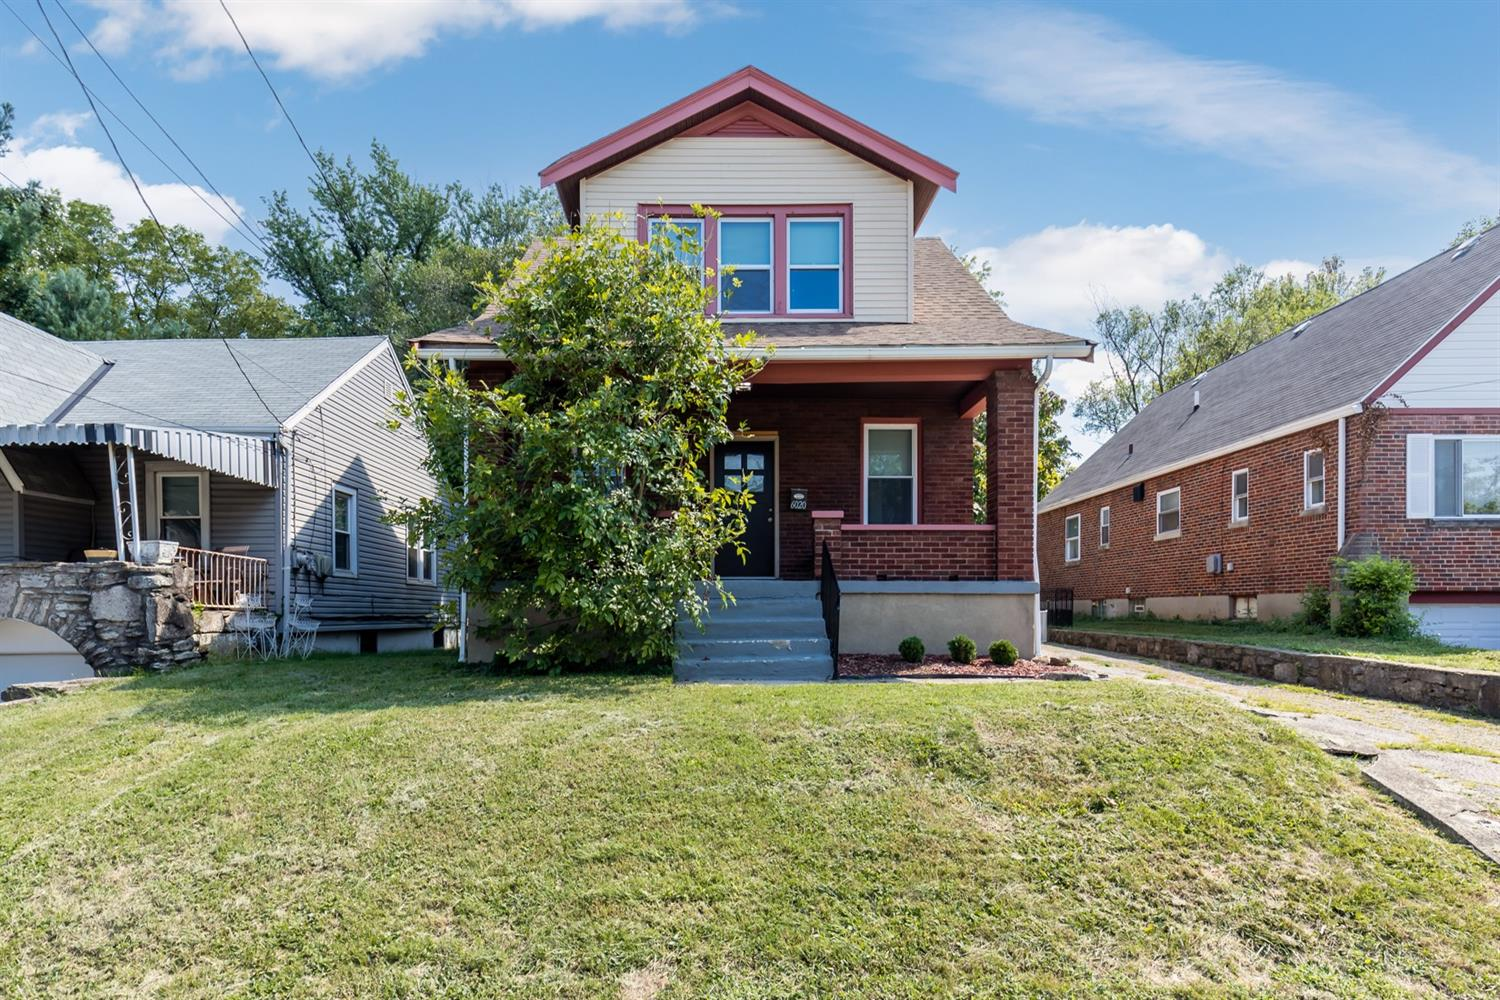 6020 Hammel Avenue, Golf Manor, Ohio 45237, 2 Bedrooms Bedrooms, 5 Rooms Rooms,1 BathroomBathrooms,Single Family Residence,For Sale,Hammel,1717223